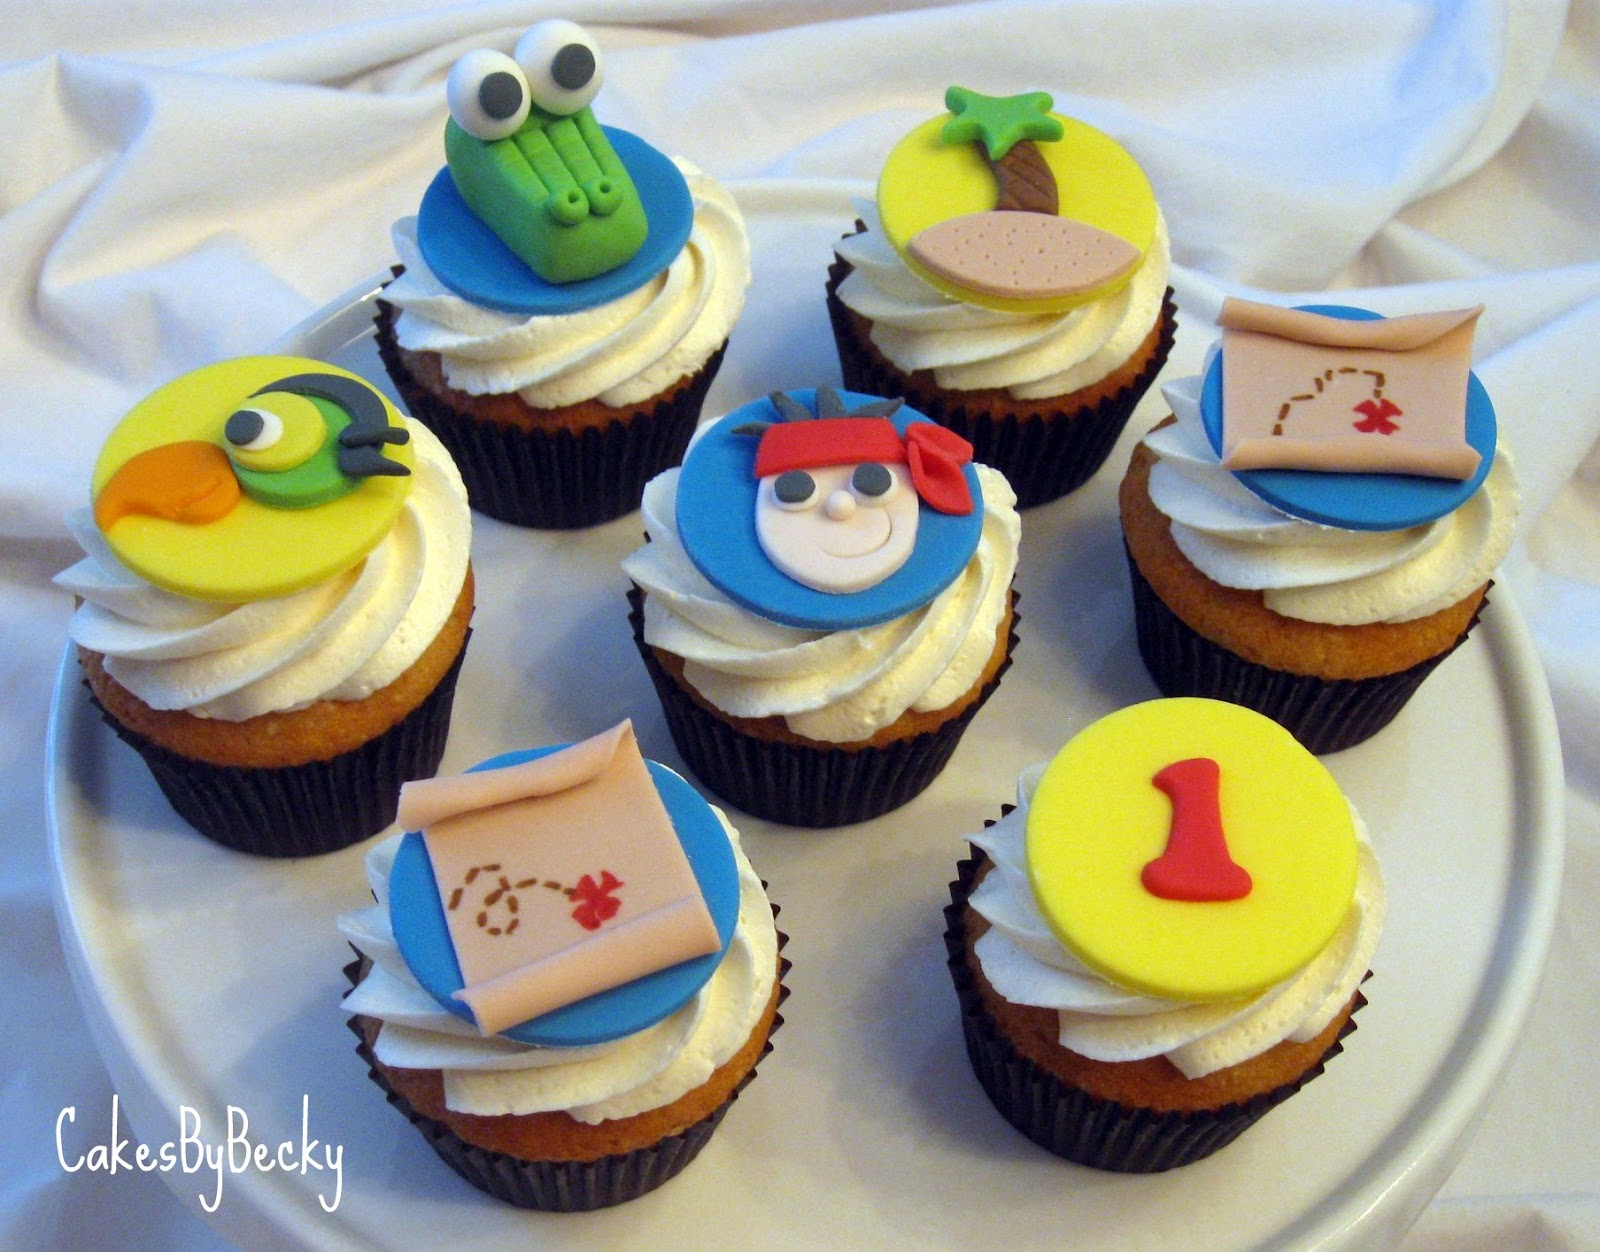 jake and the neverland pirates cupcakes - photo #3